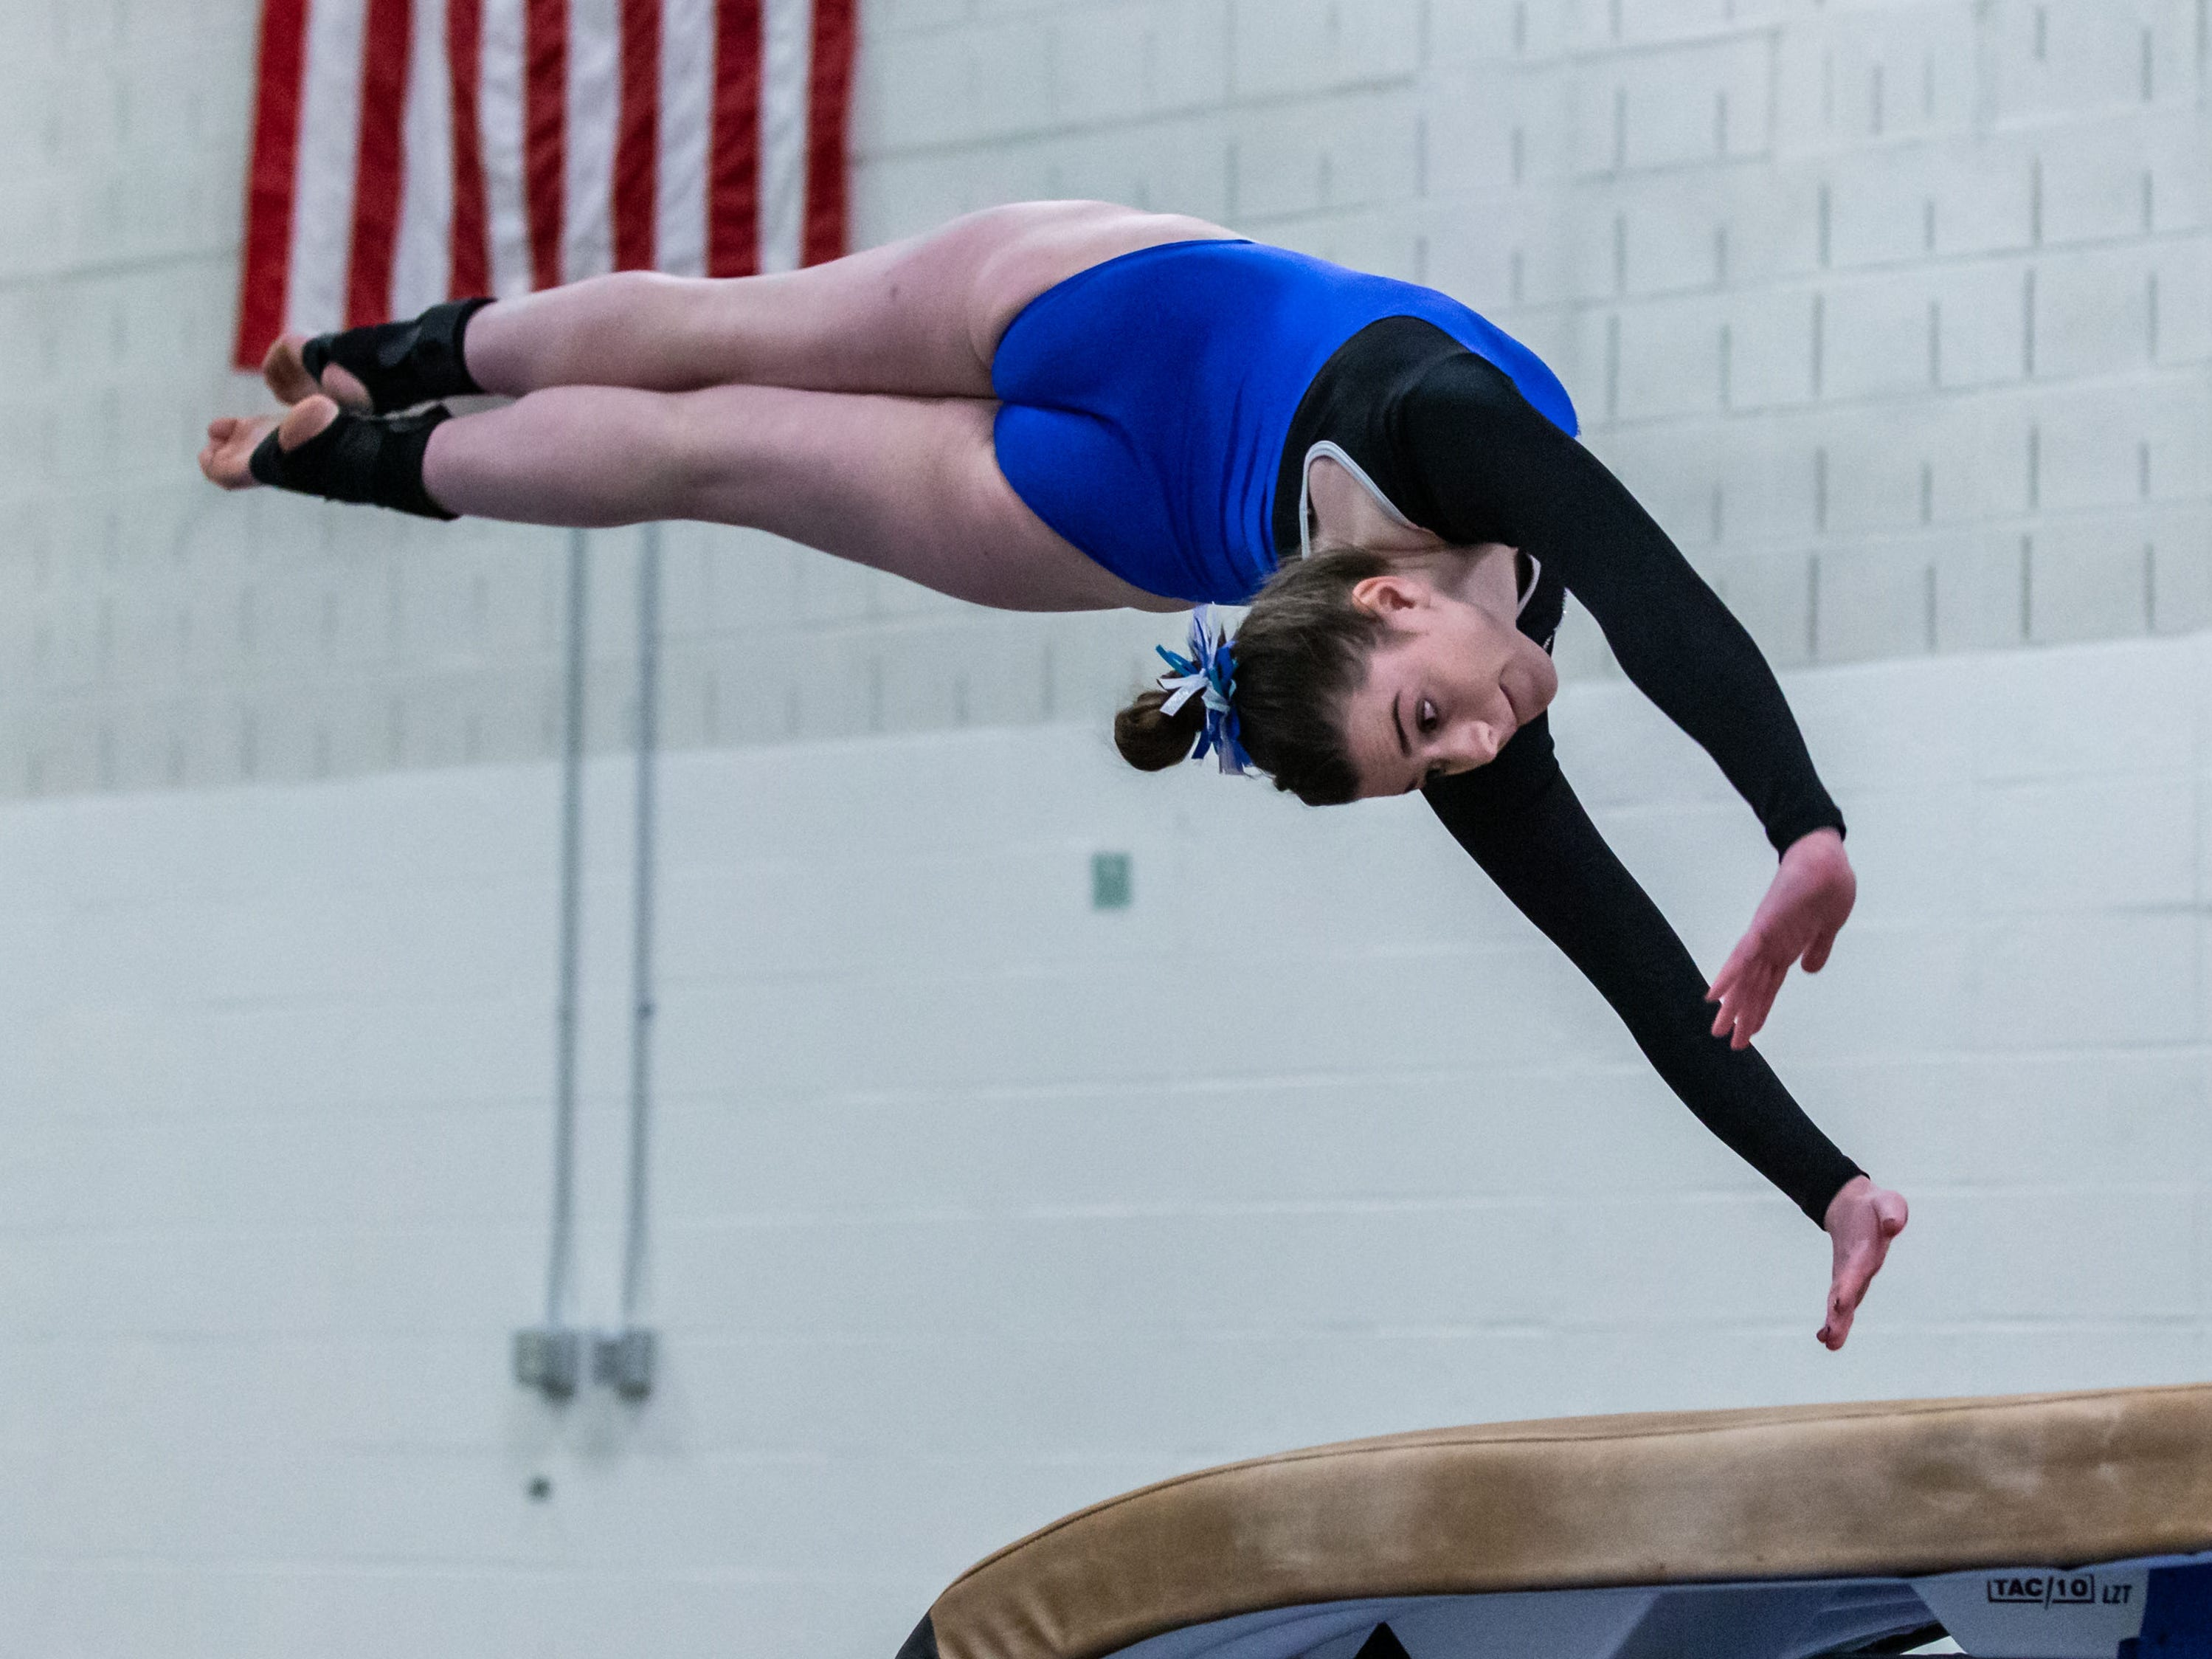 Nicolet gymnast Morgan Schiff competes on the vault during the meet at home against Whitefish Bay on Thursday, Jan. 3, 2019.